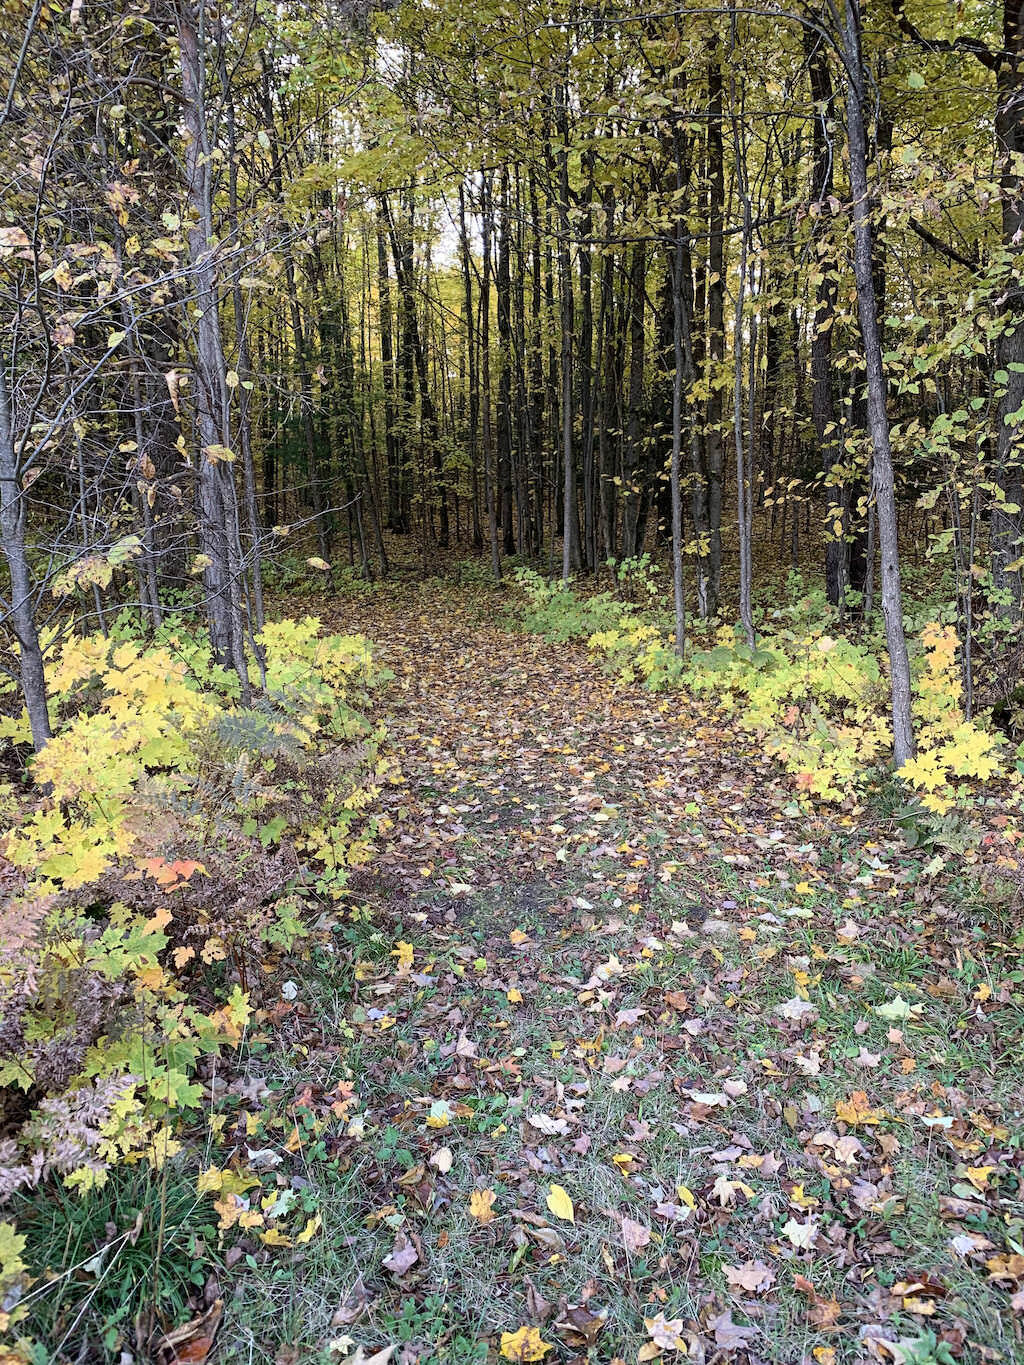 2019 Ranch Run Route at Peace Ranch in Traverse City, Michigan.